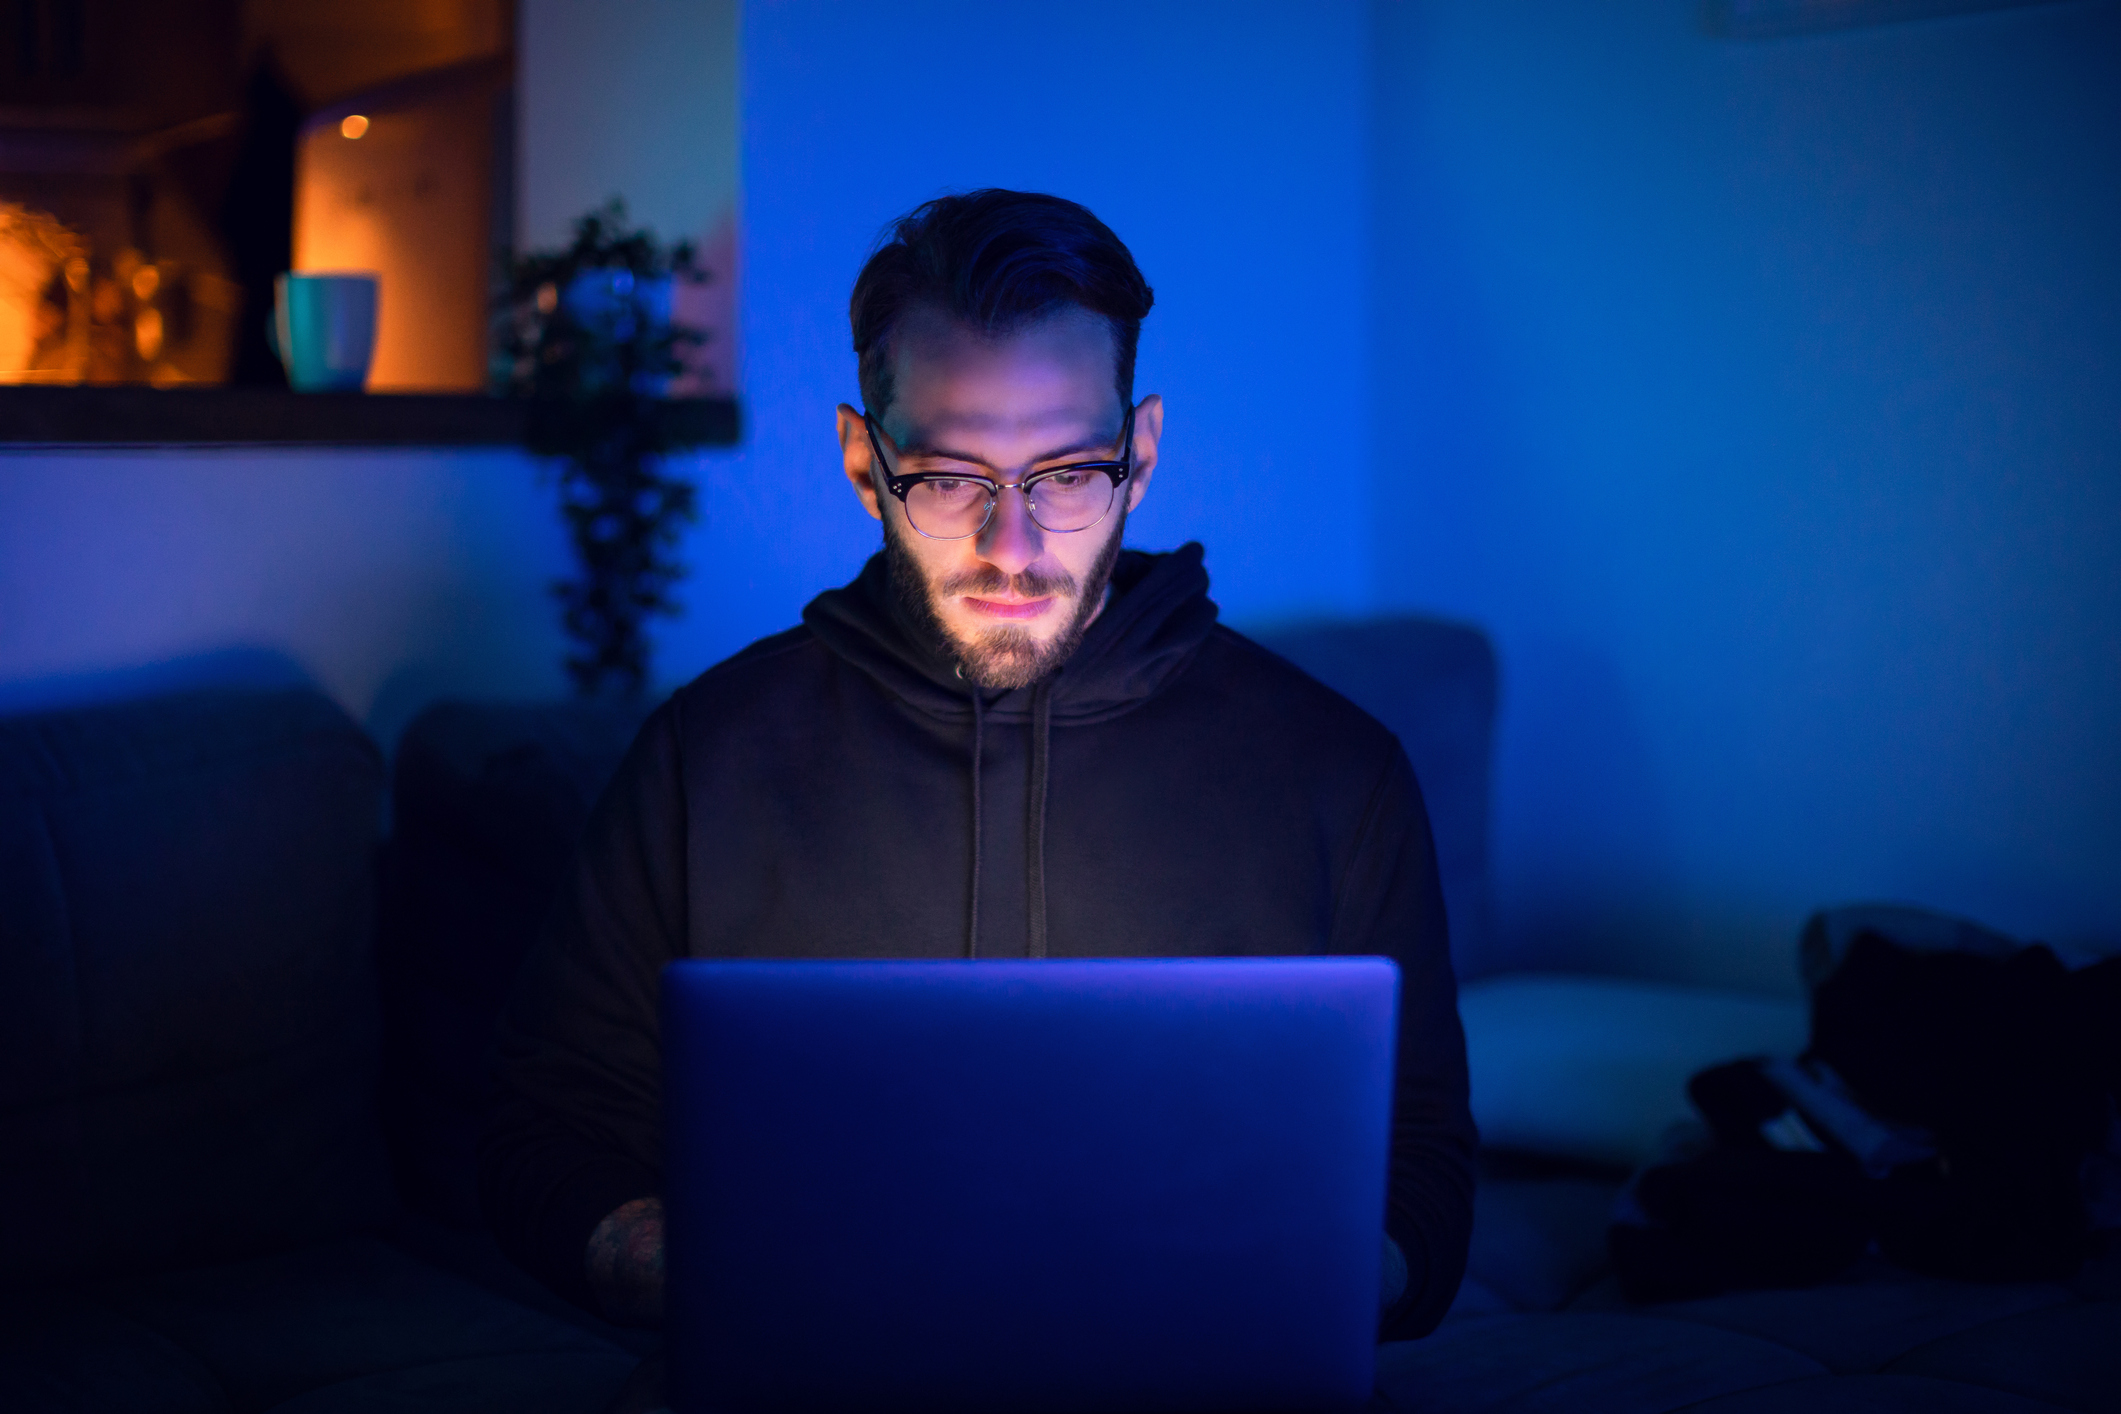 4 Areas most vulnerable to cyberattacks